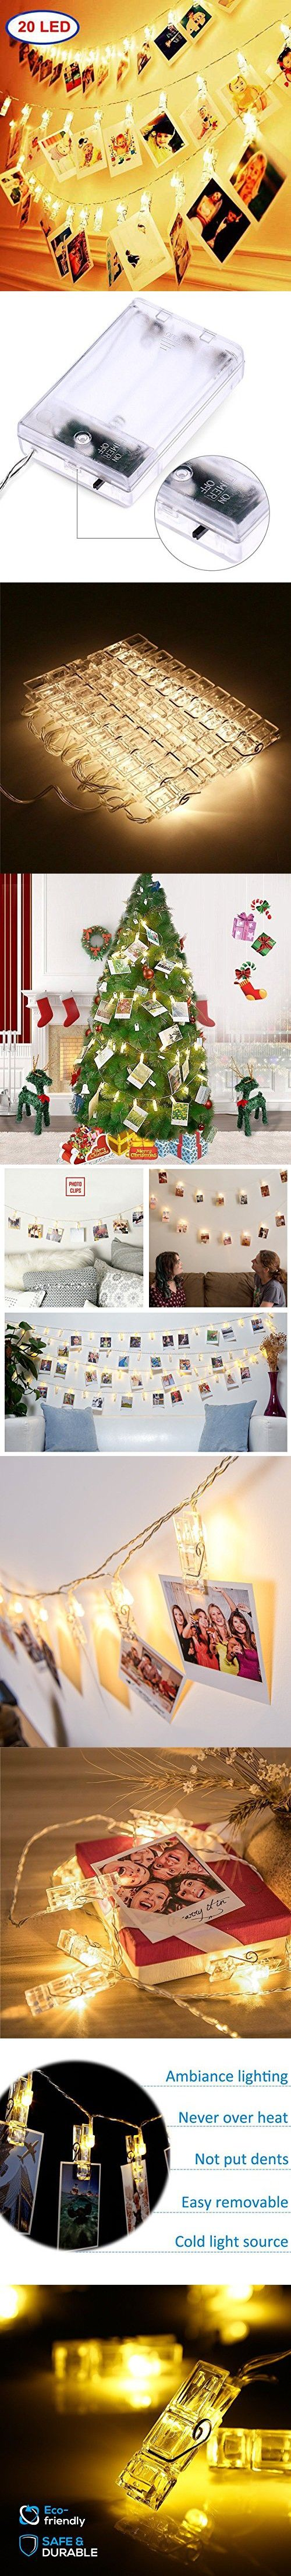 20 LED Photo Clip String lights 10 FeetChristmas Lights Starry light Wall Decoration Light Wedding Party Christmas Home Decor Lights for Hanging Photos Paintings Pictures Card and Memos(Warm White)